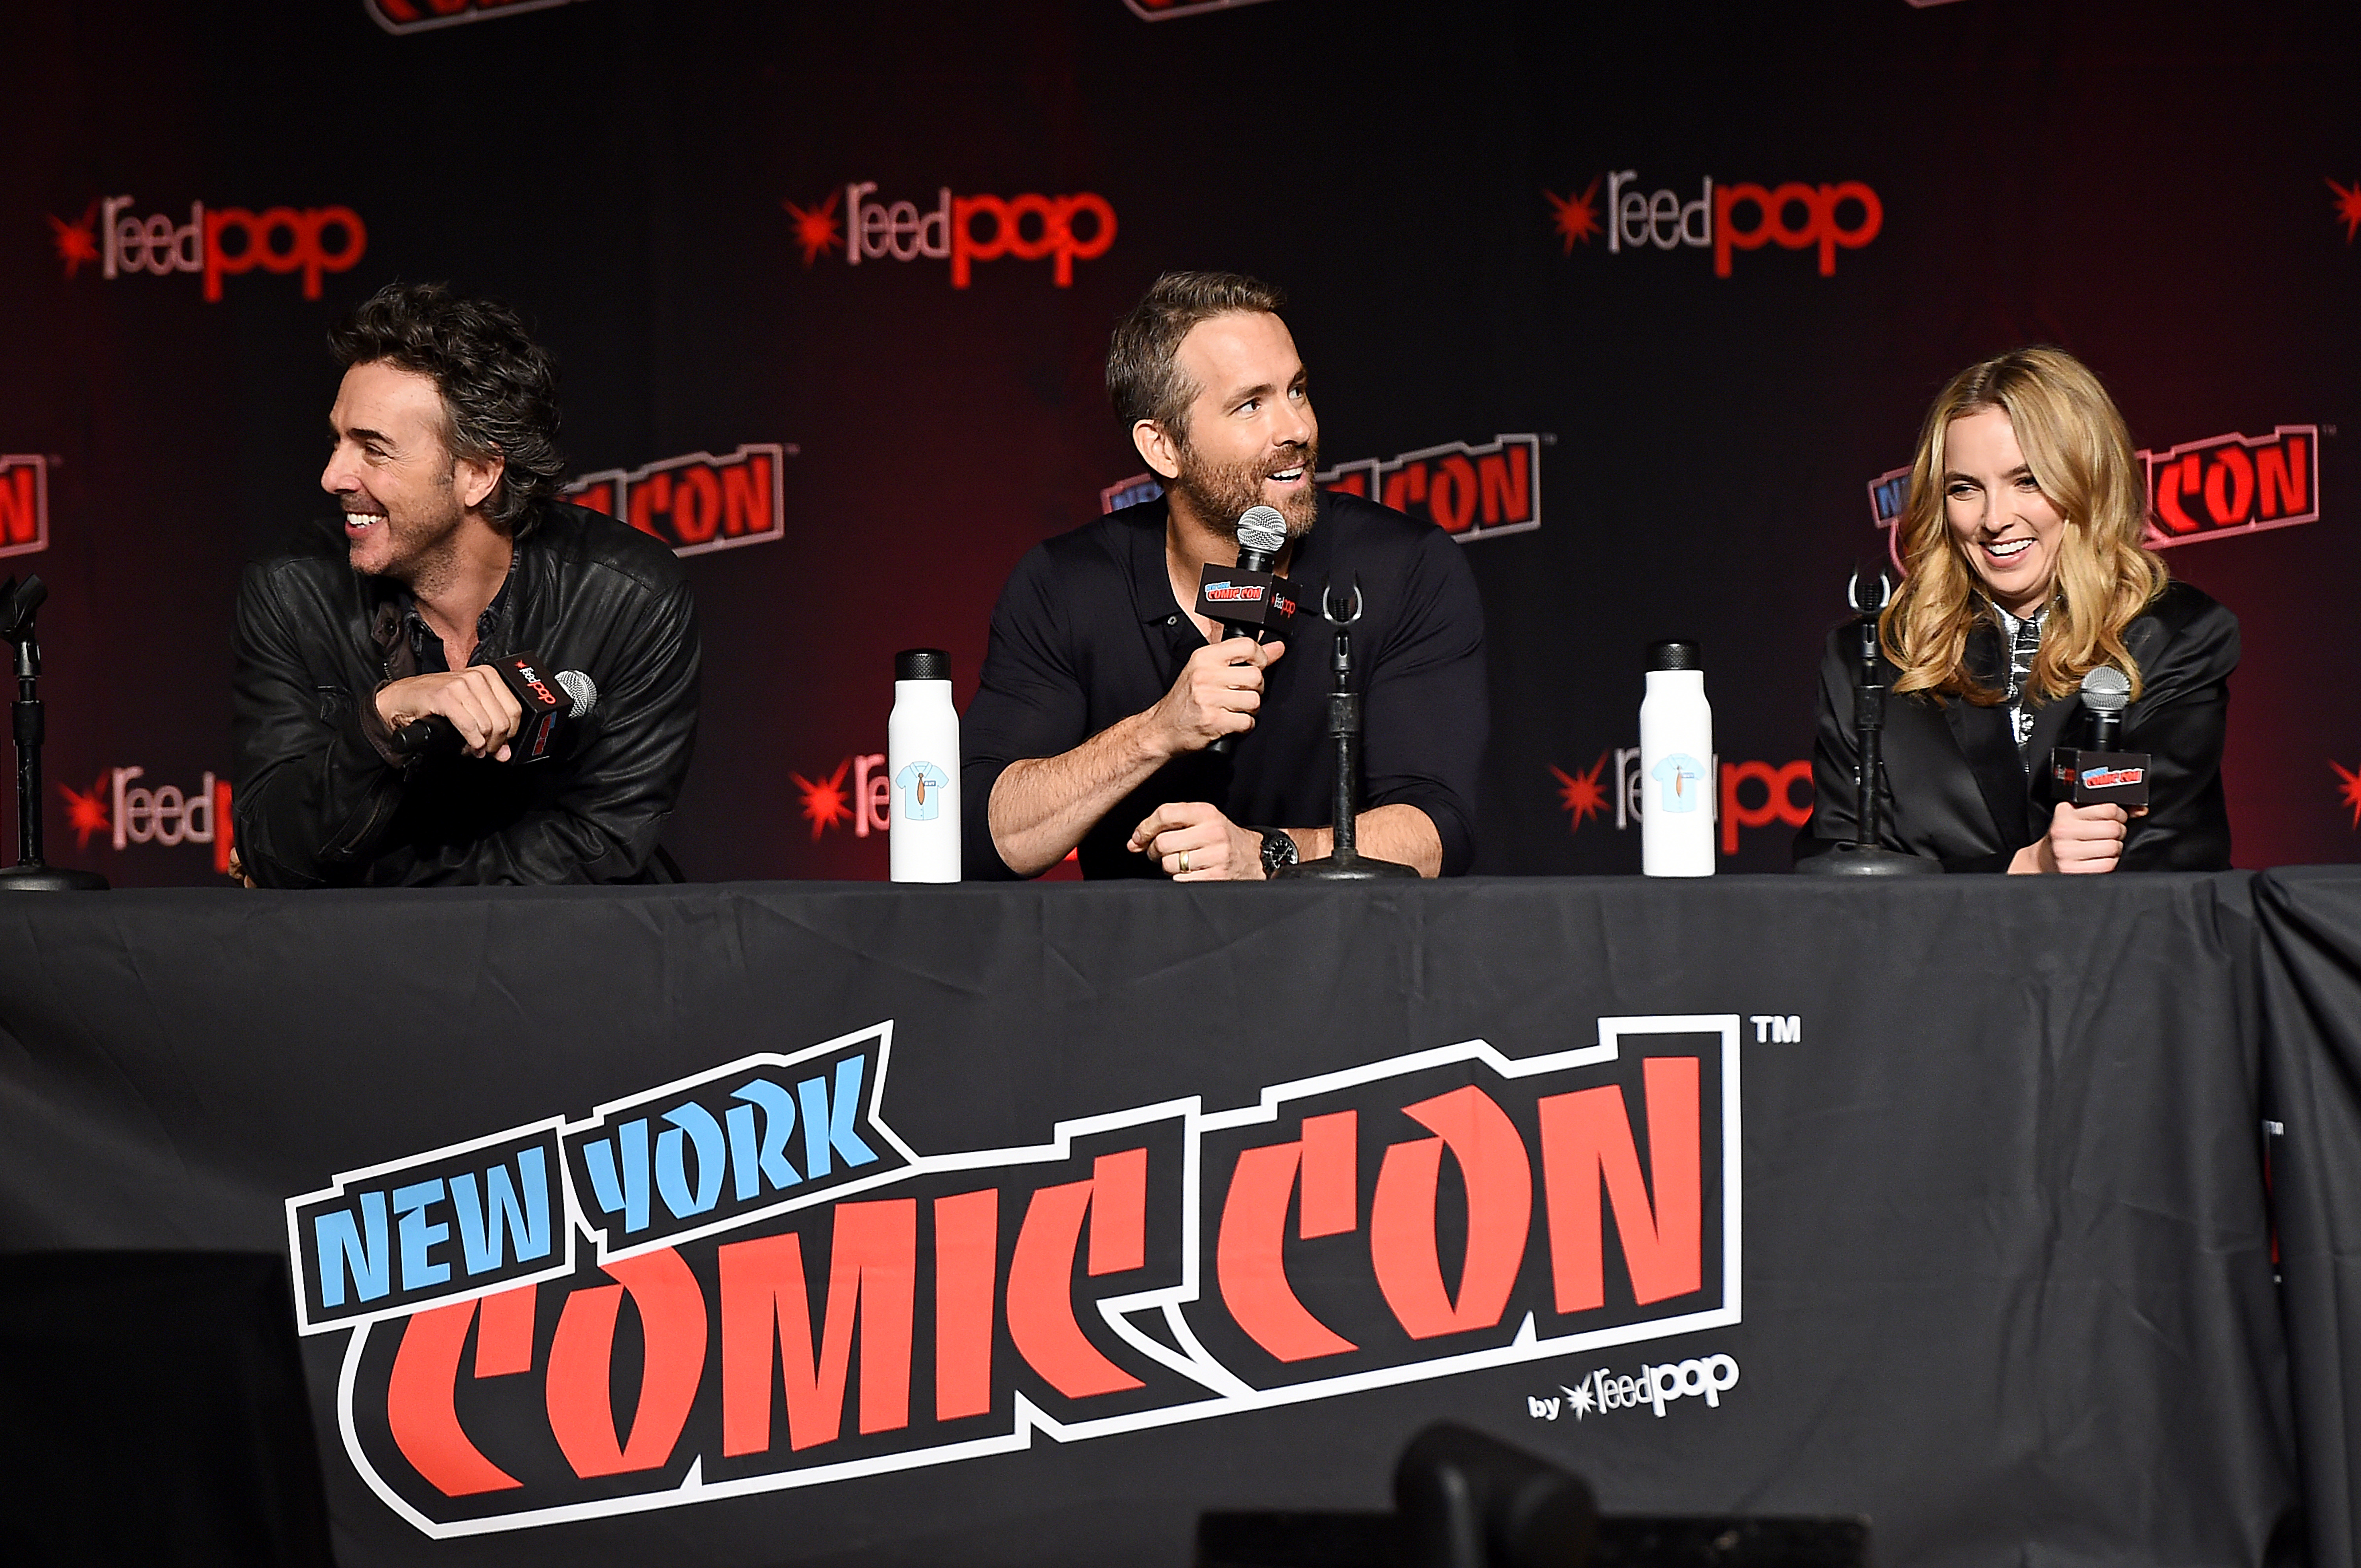 Ryan Reynolds, Shawn Levy, and Jodie Comer at an event for Free Guy